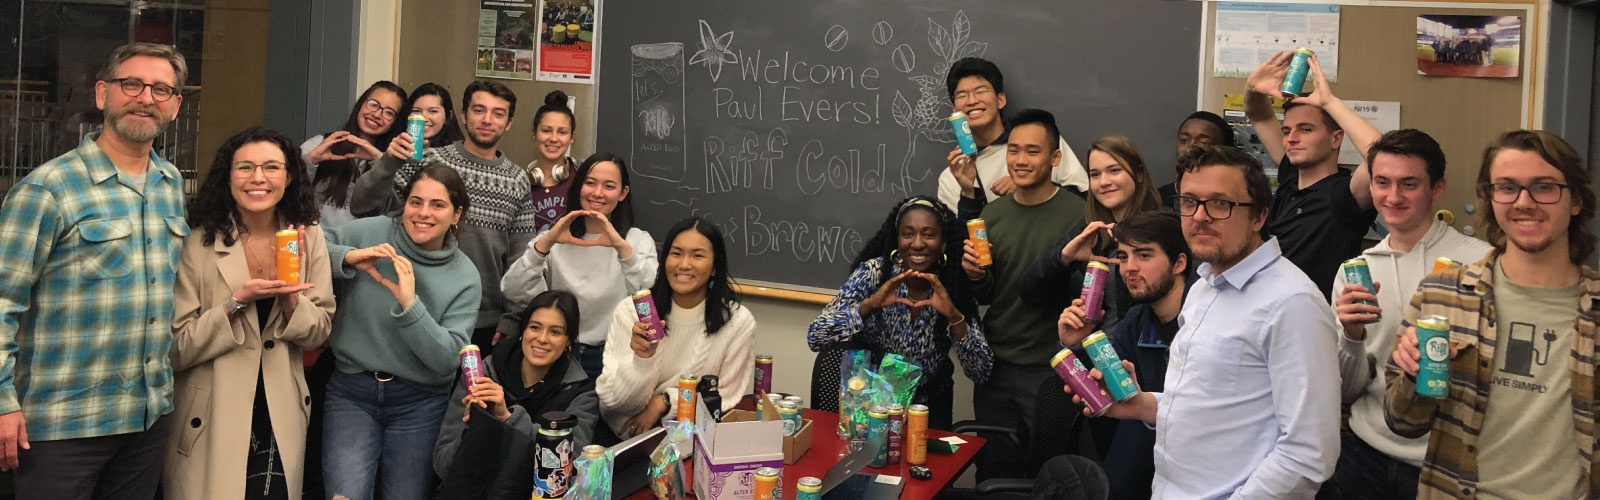 Group photo of UO students and Riff Cold Brewed CEO Paul Evers